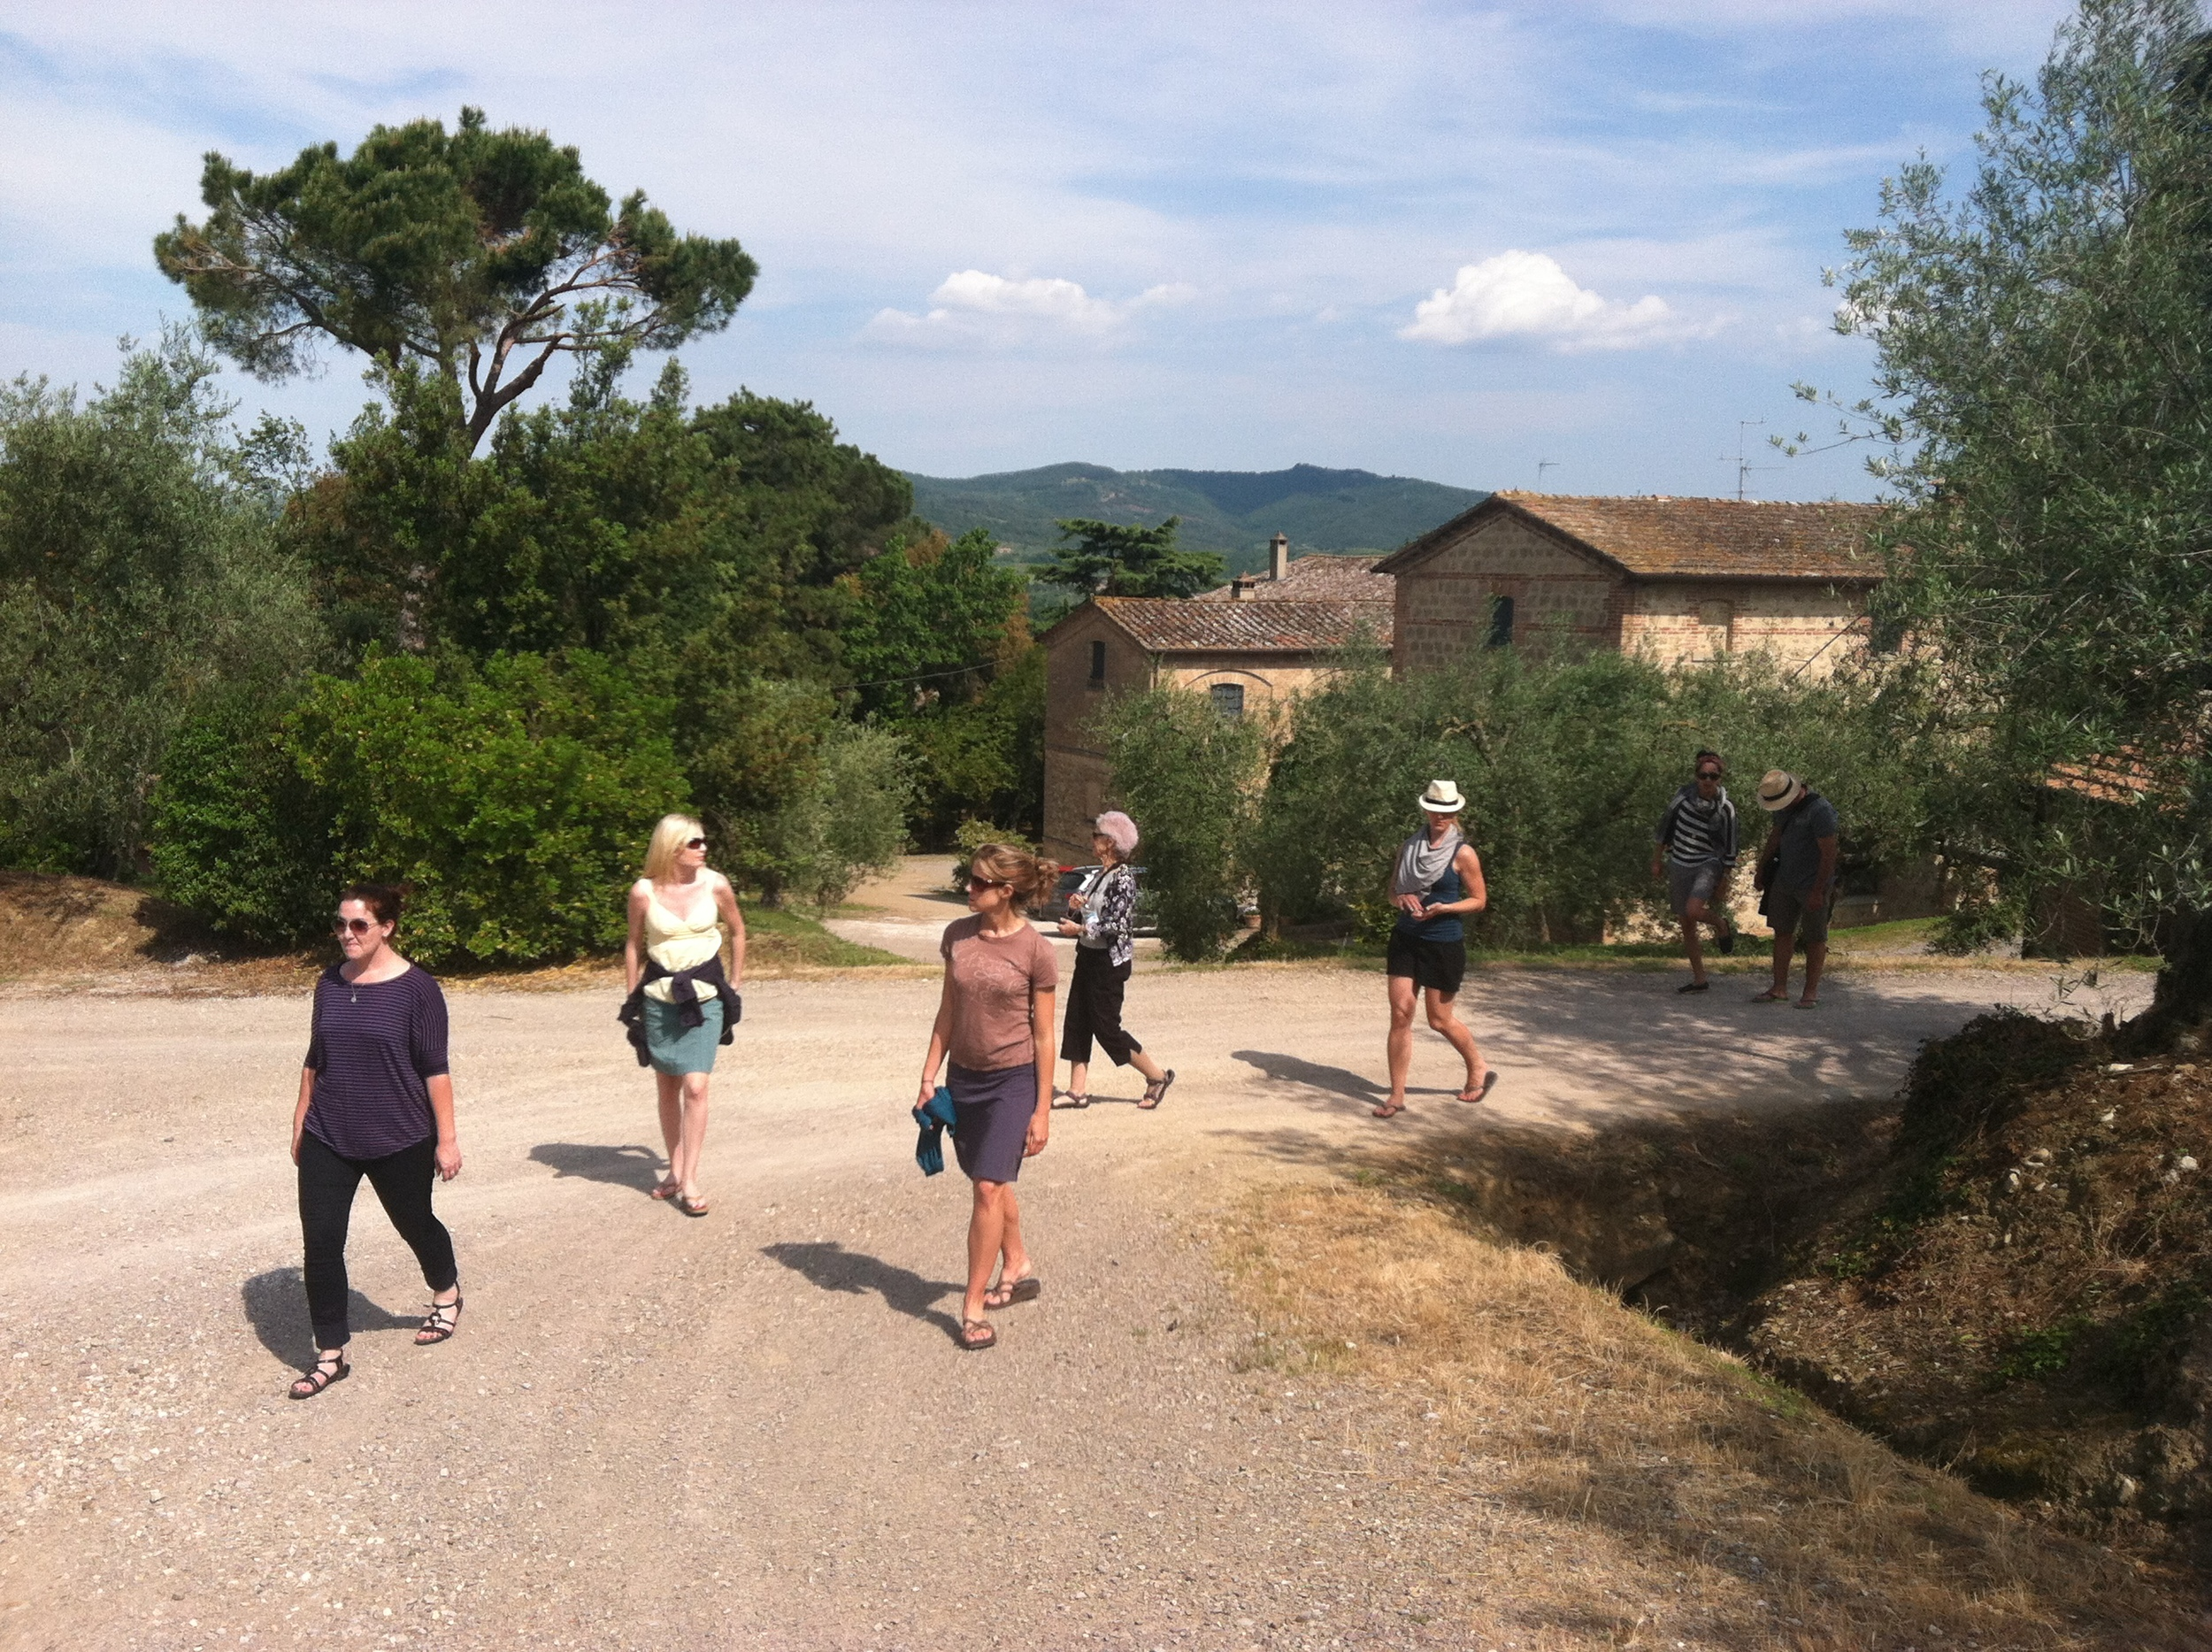 Guests strolling the area EAT.PRAY.MOVE Yoga Retreats | Tuscany, Italy